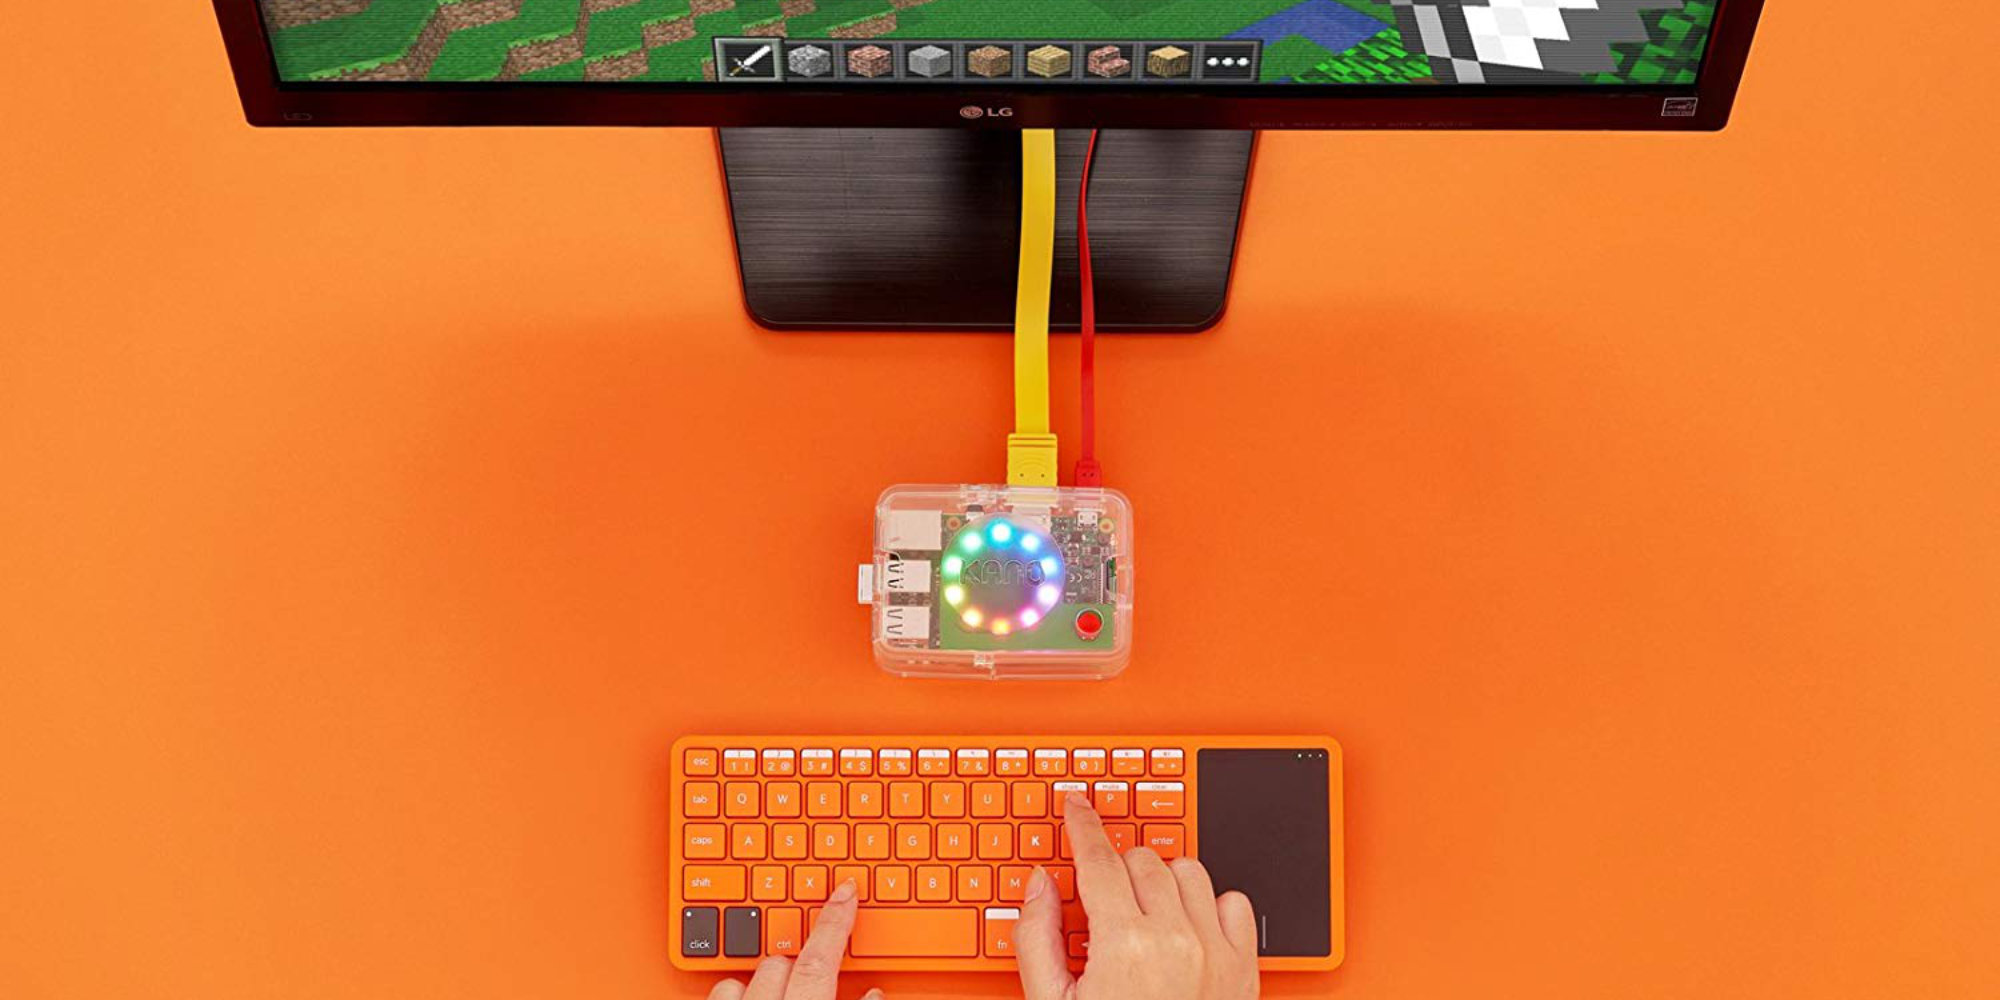 Kano's Raspberry Pi-powered Computer Kit has dropped to a new Amazon low at $69 (24% off)